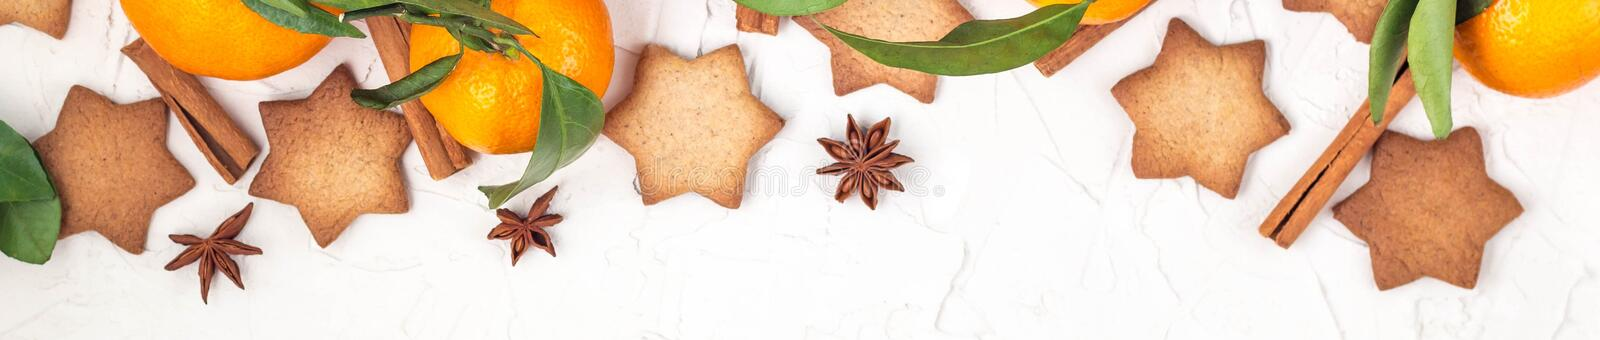 Border of Christmas star cookies with spices and mandarin on white background with copyspace royalty free stock photography